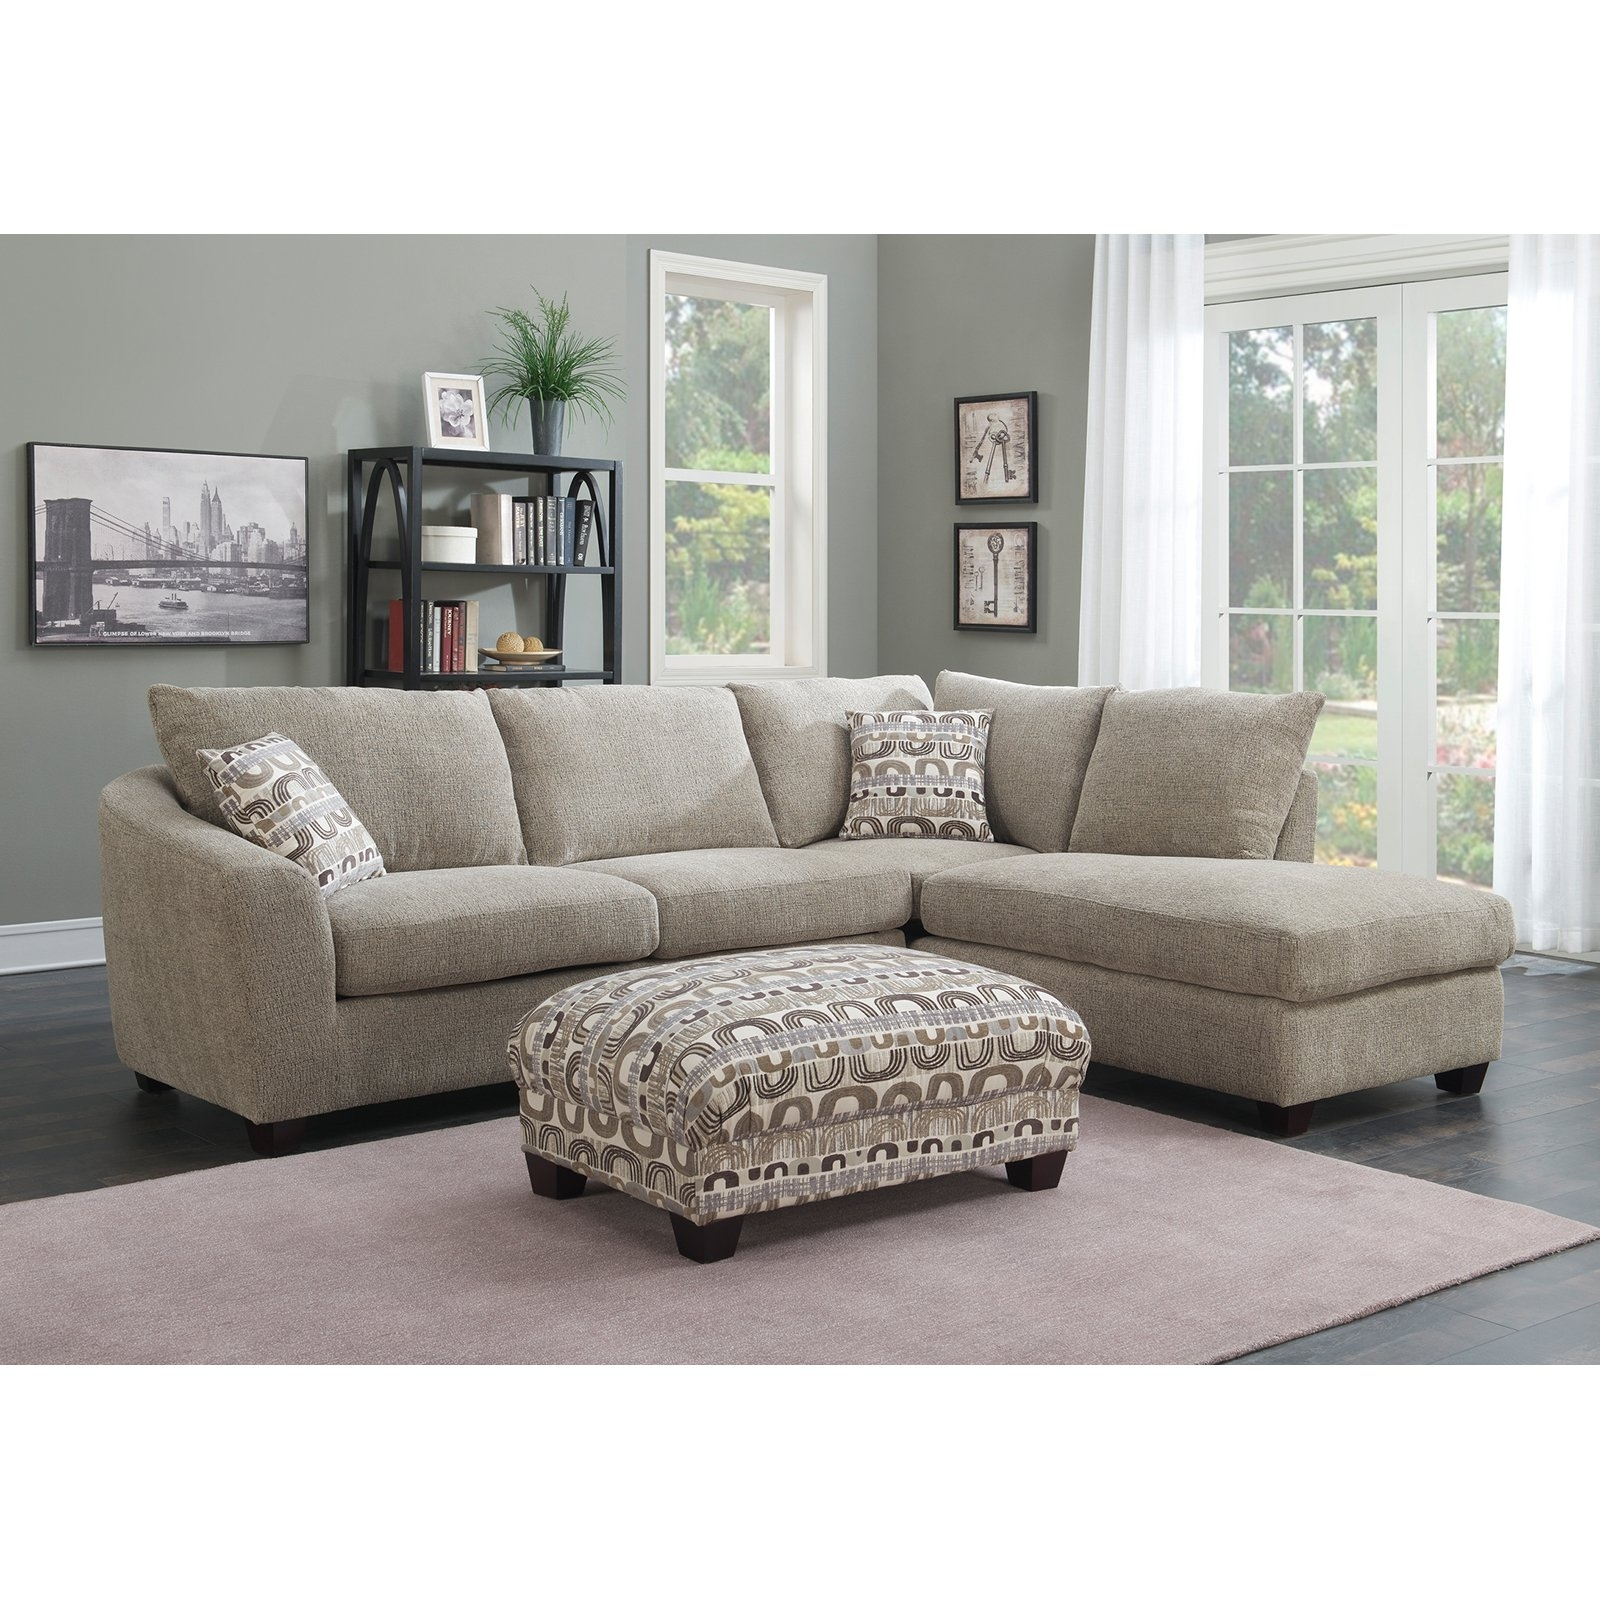 Emerald Home Urbana Piece Sectional Sofa With Chaise Couch Double with regard to Kerri 2 Piece Sectionals With Laf Chaise (Image 9 of 30)